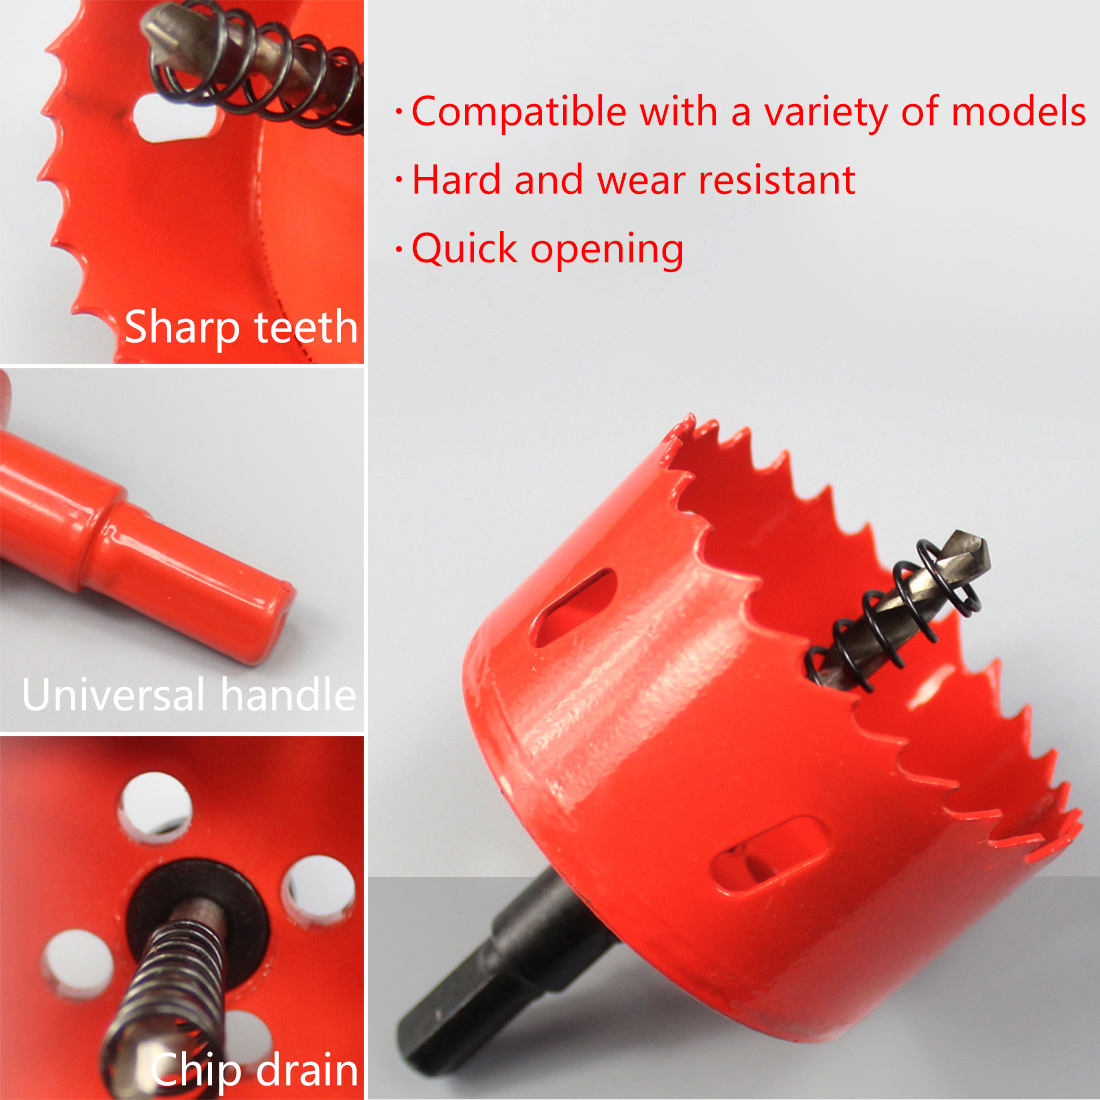 M42 Material 16mm-50mm Drill Bit Hole Saw Twist Drill Bits Cutter Power Tool Drilling Kit Carpentry Tools For Wood Steel Iron